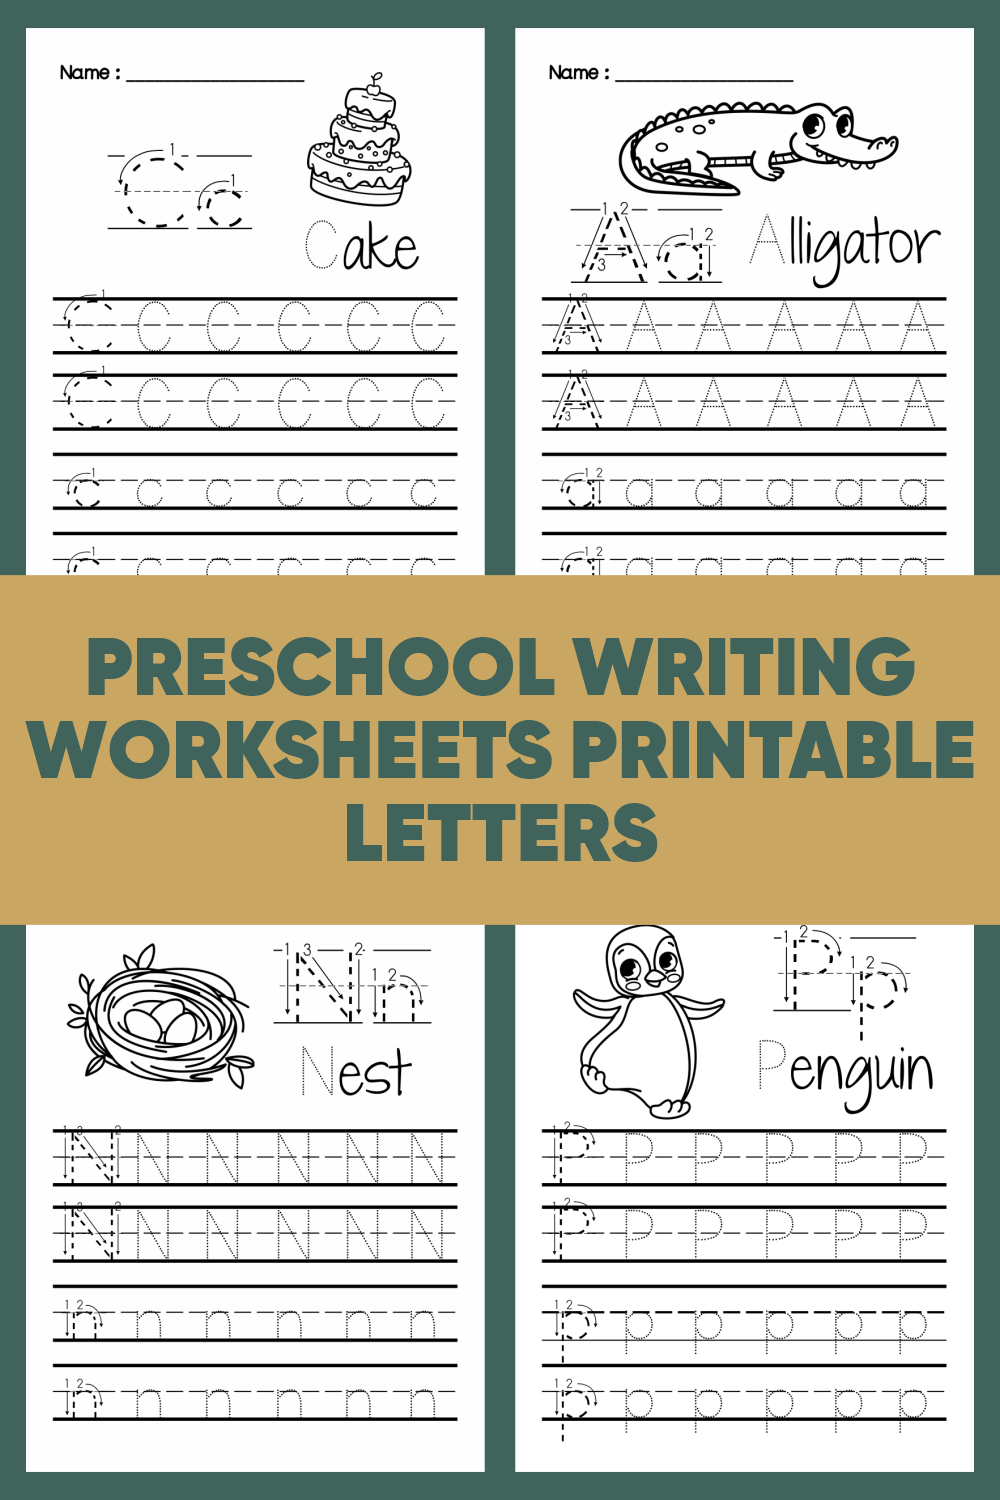 Preschool Writing Worksheets Printable Letters